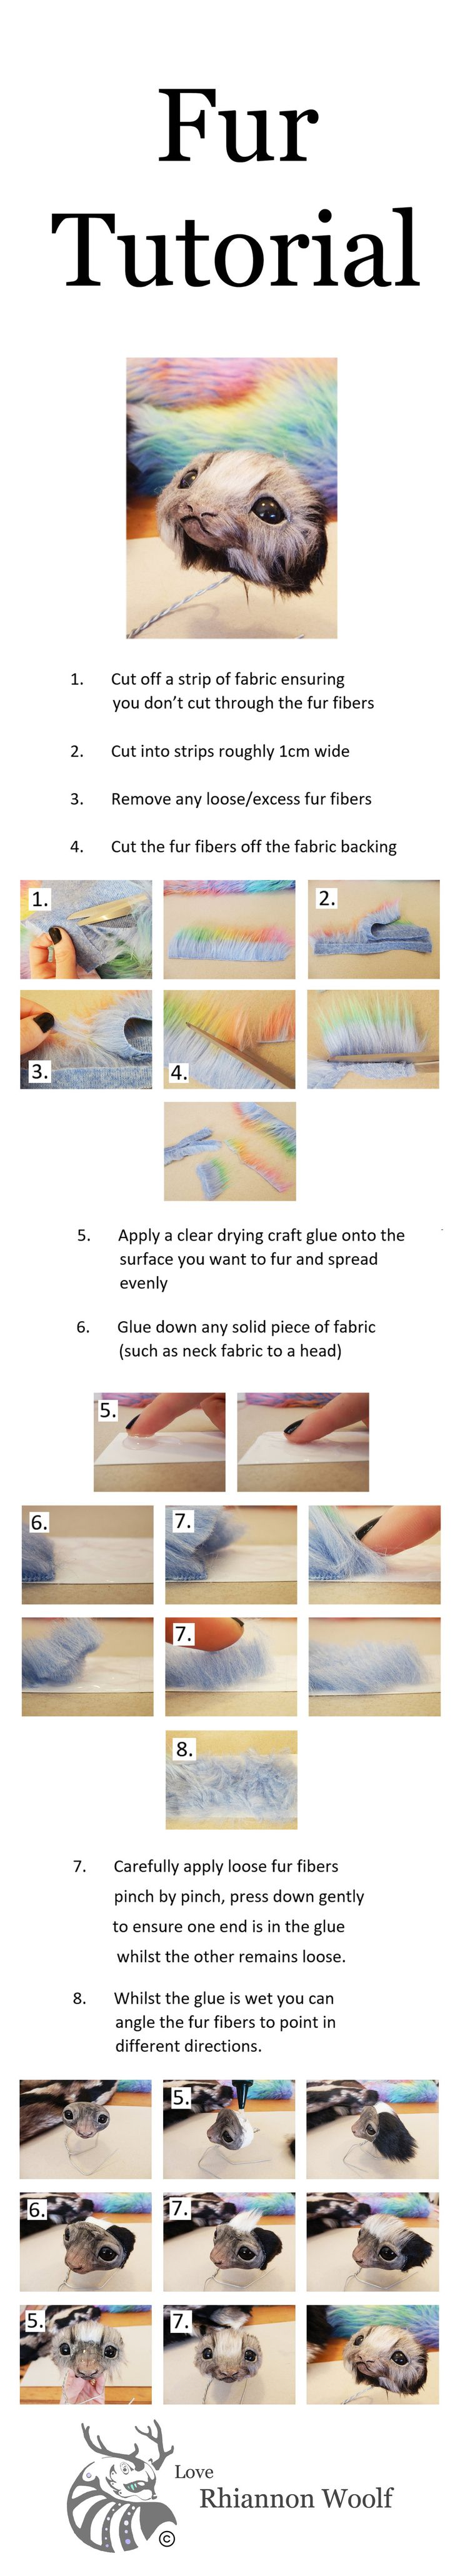 Fur Tutorial by RhiannonWoolf